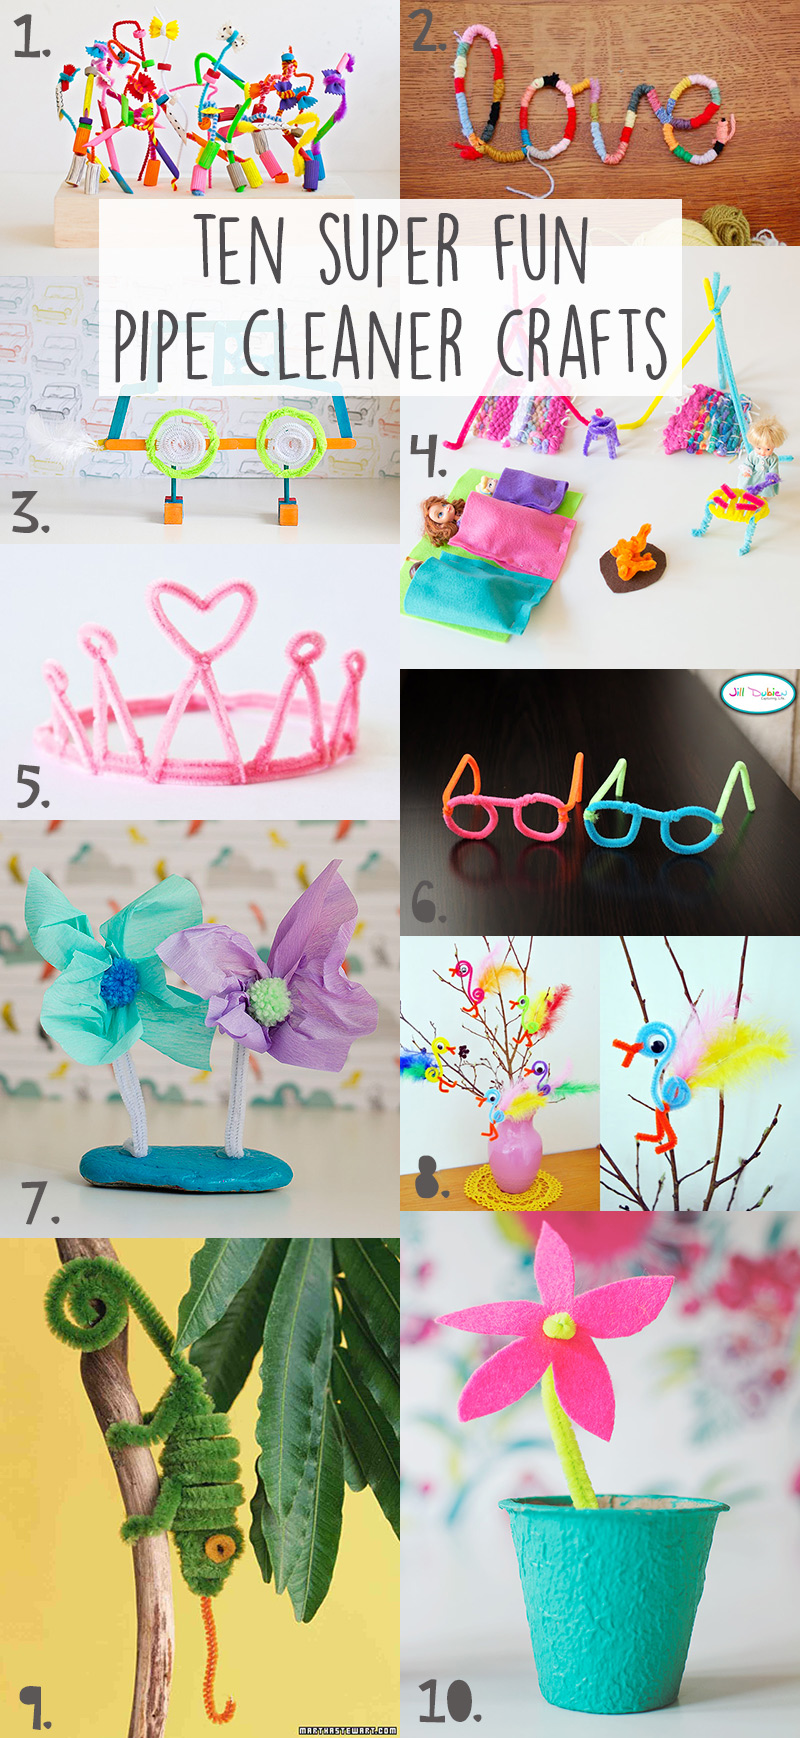 ten-super-fun-pipe-cleaner-crafts